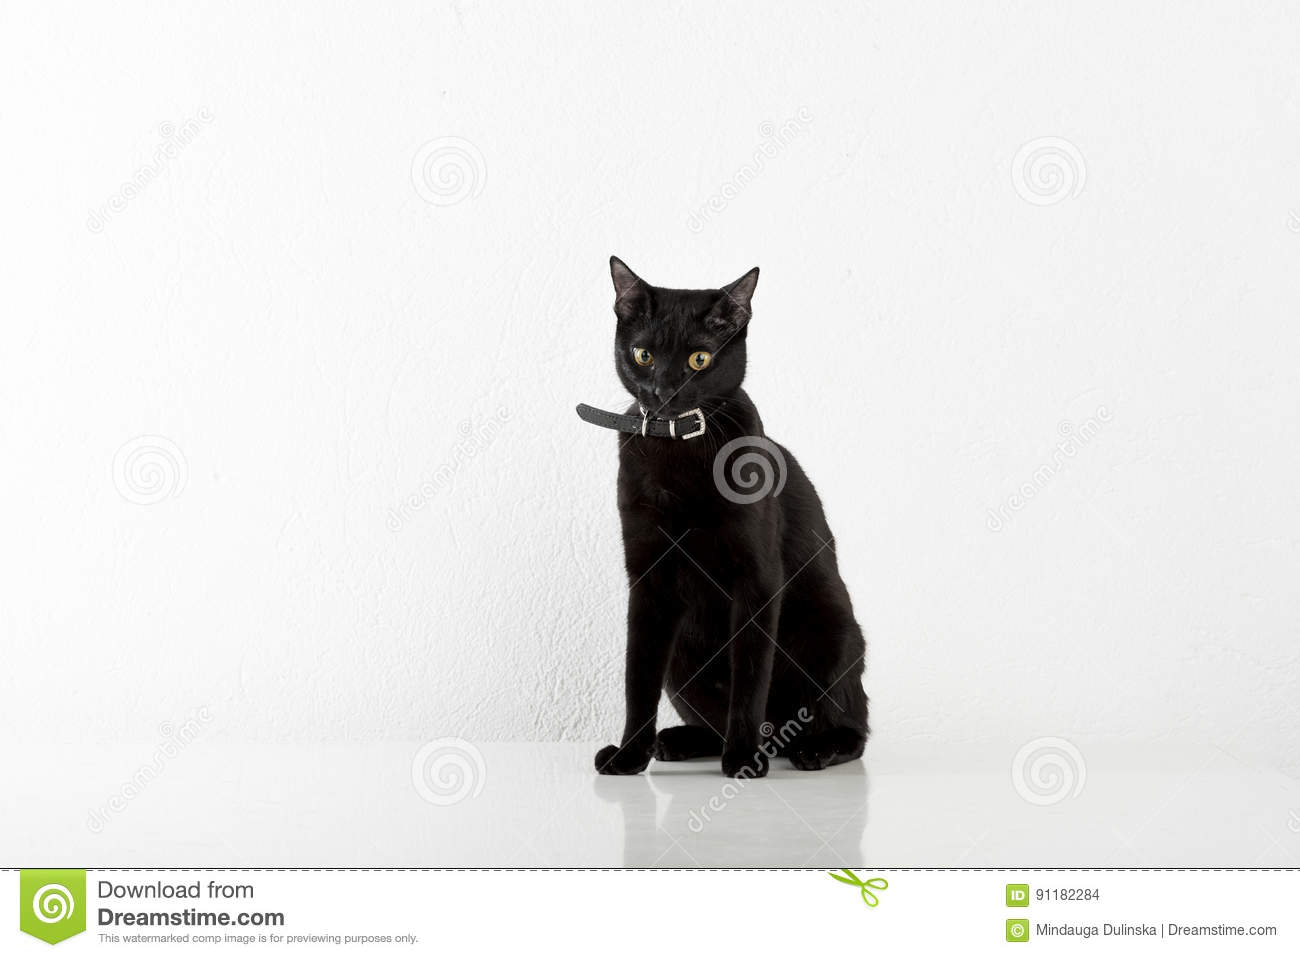 Noircat Bombay Noir Cat Sitting Sur Le Fond Blanc Photo